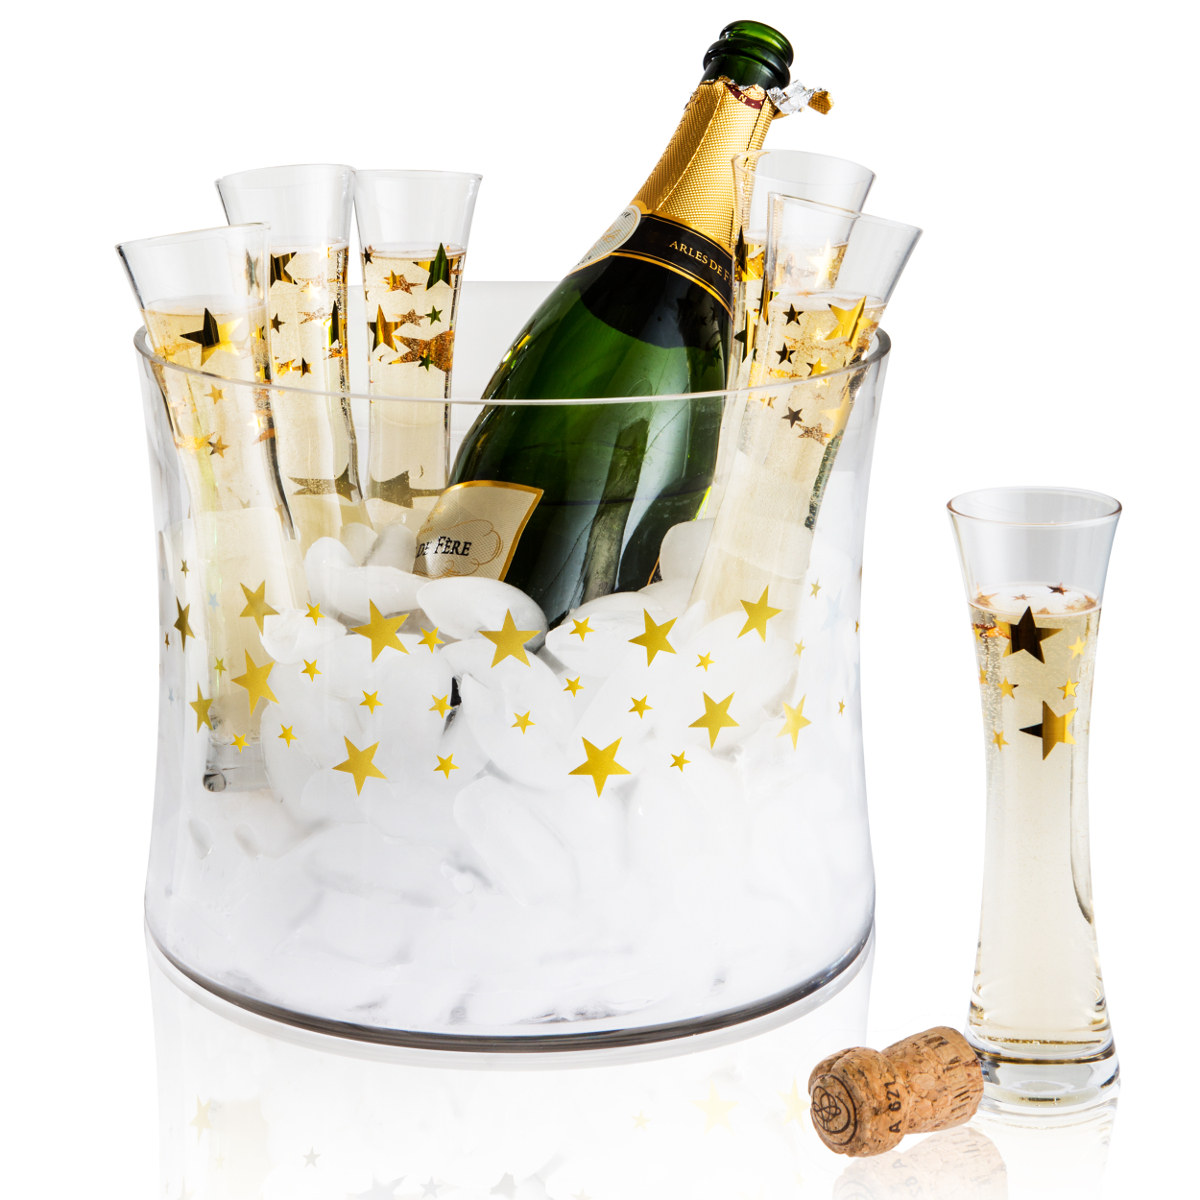 Artland Gold Stars 7 Piece Glass 4 Ounce Stemless Toasting Flute Set with Ice Bucket